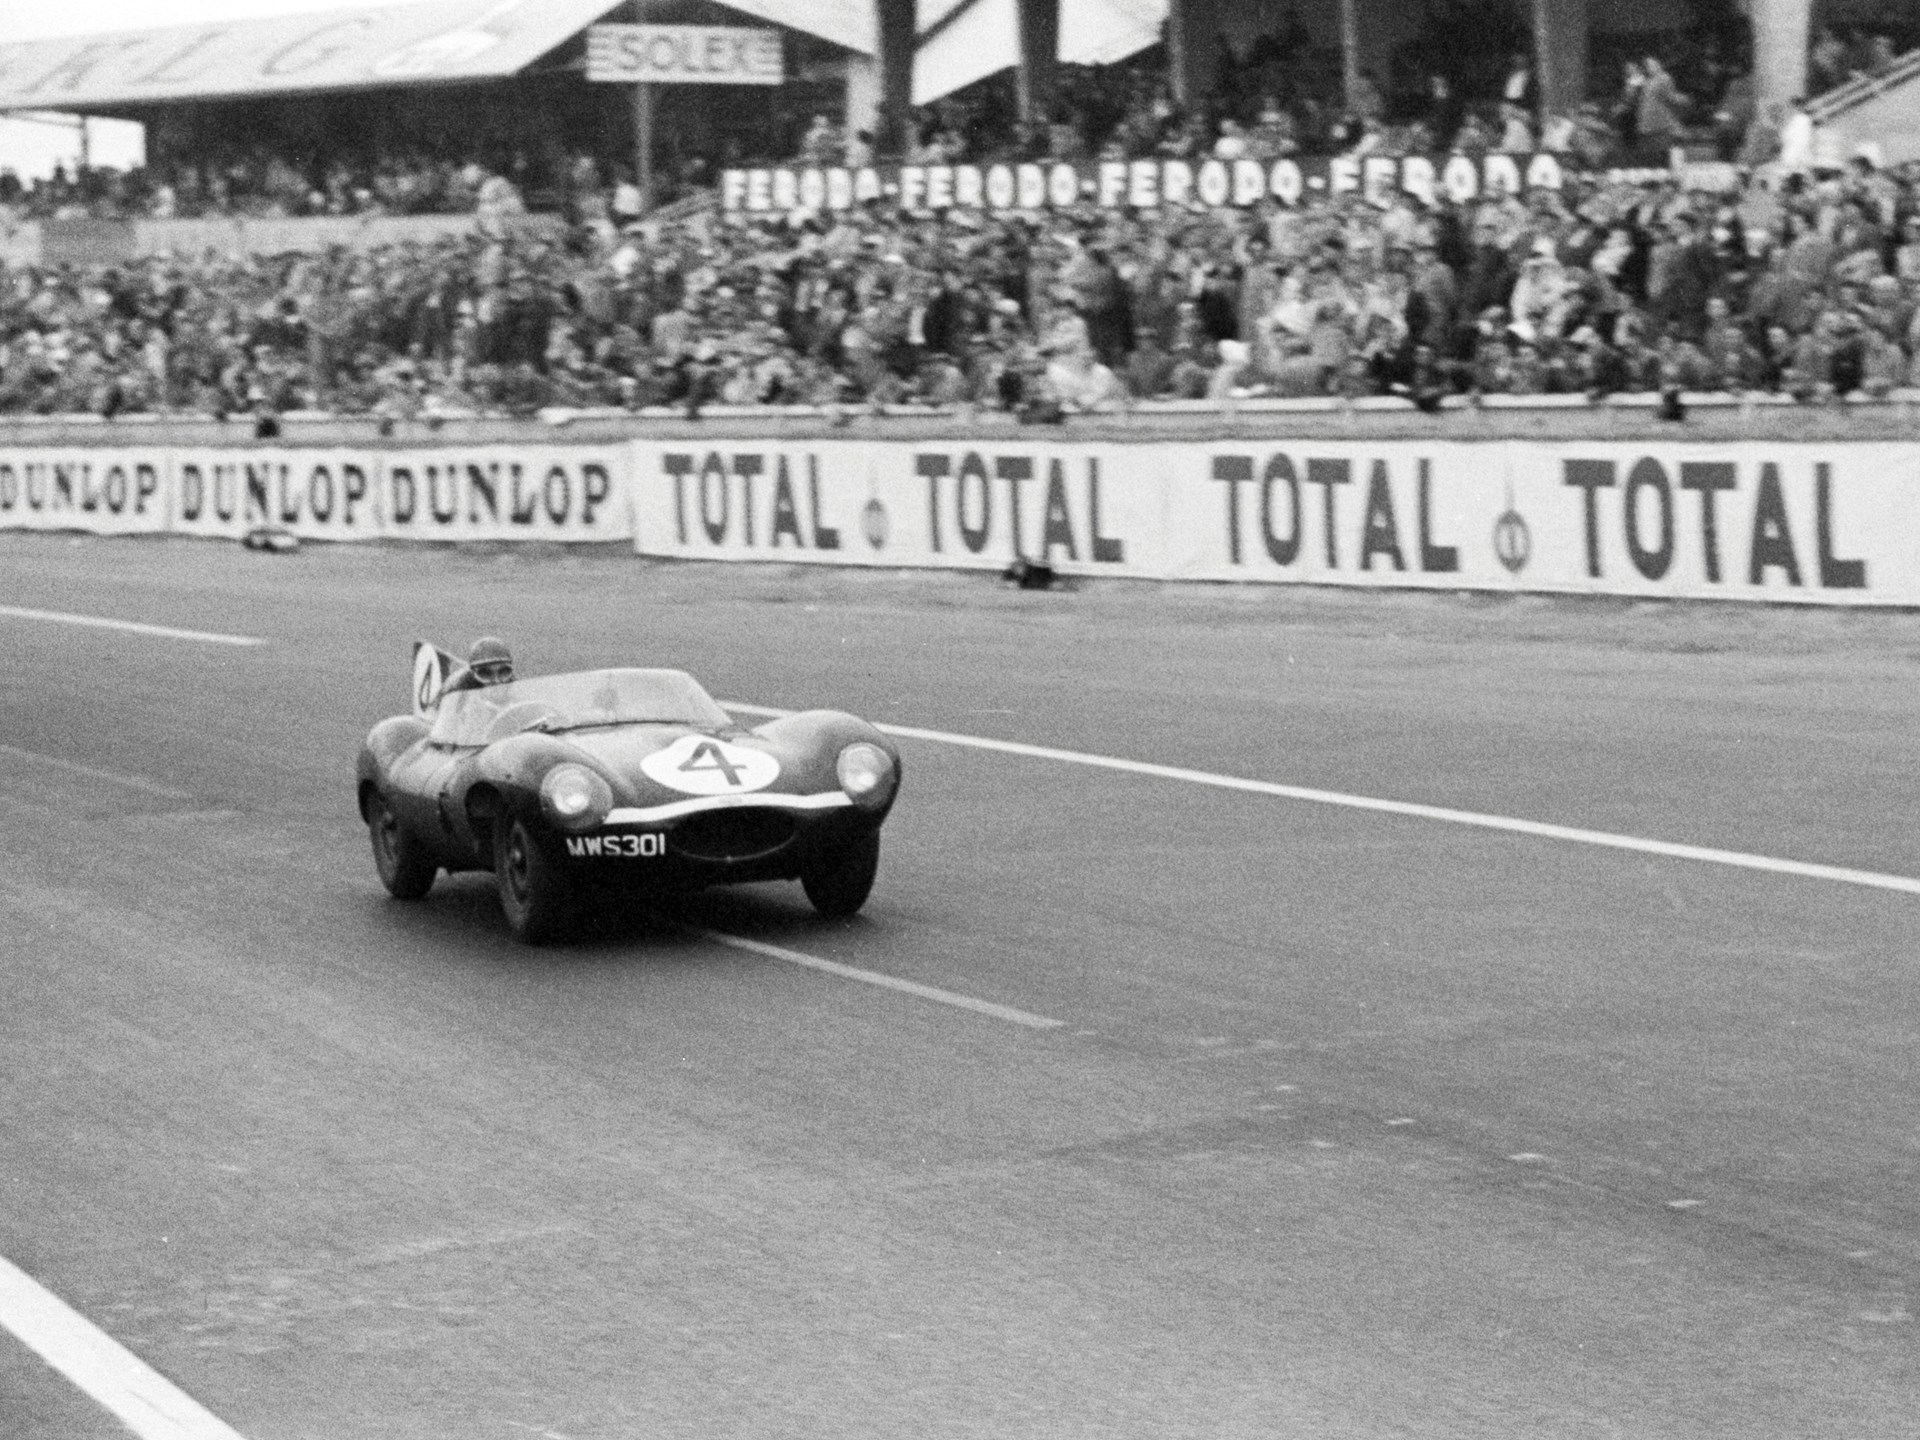 Chassis no. XKD 501 passing the grandstands en route to a first place finish at the 1956 24 Hours of Le Mans.